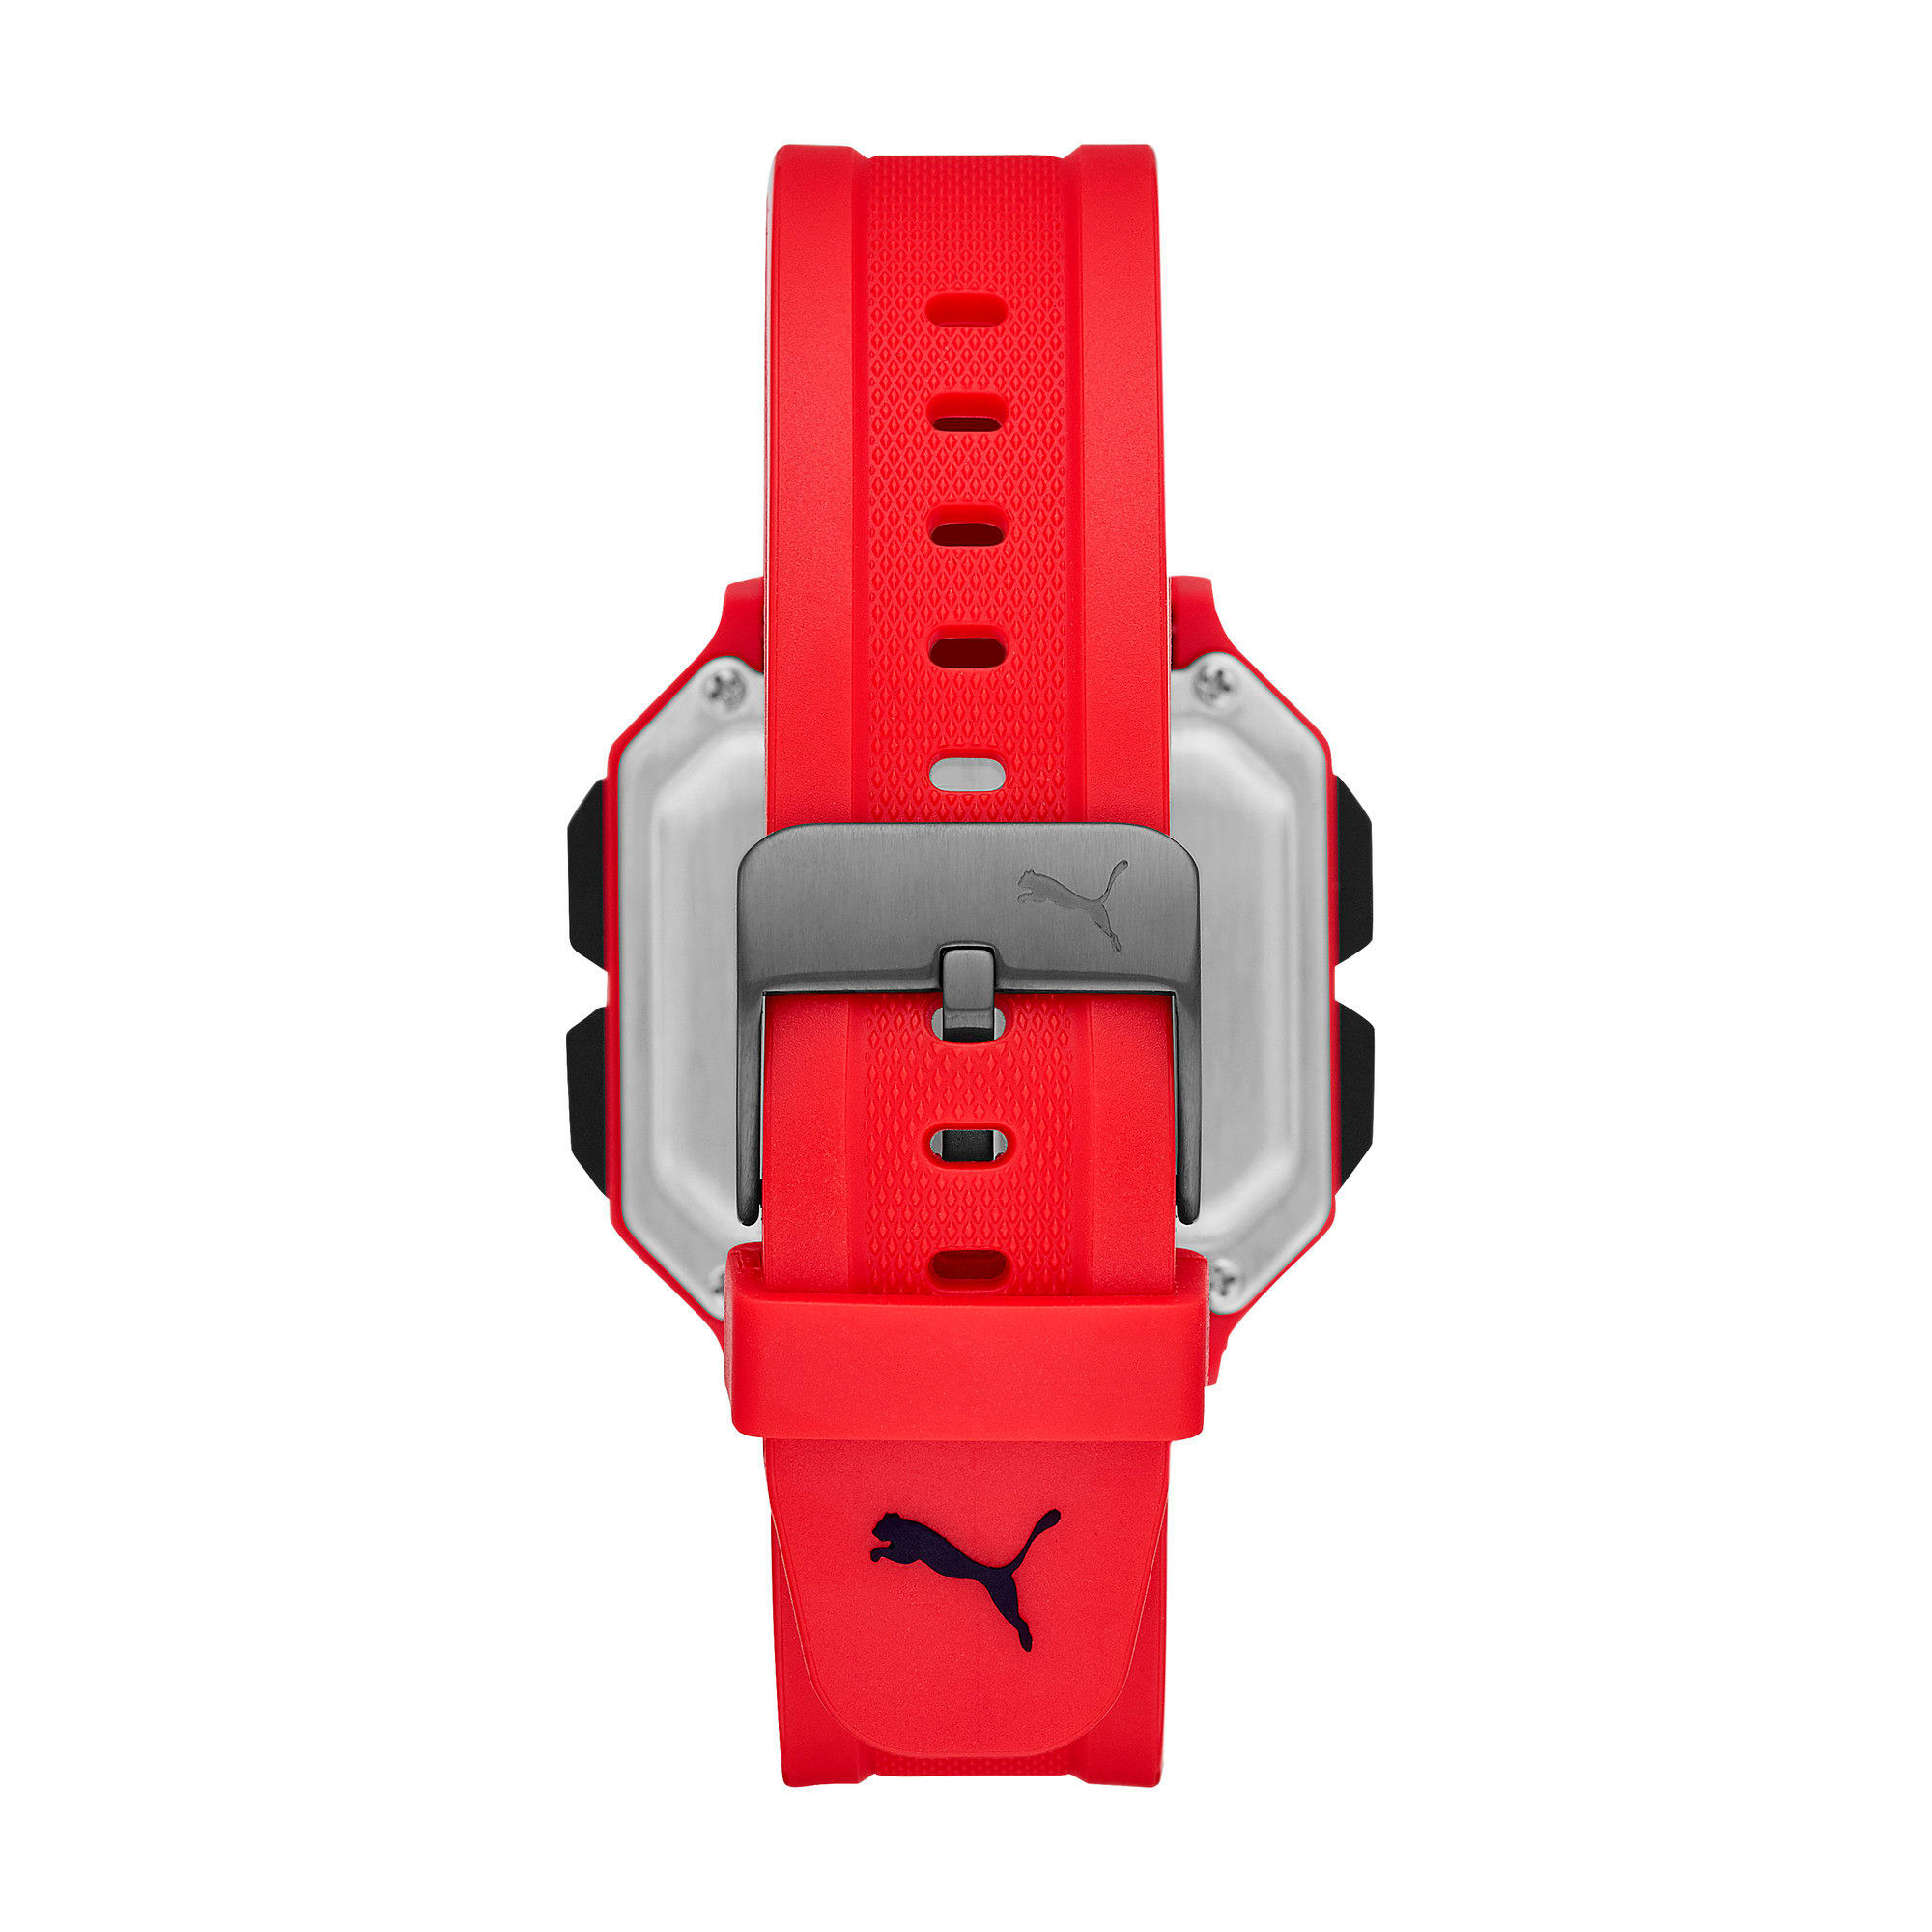 Thumbnail 2 of Remix Red Digital Watch, Red/Red, medium